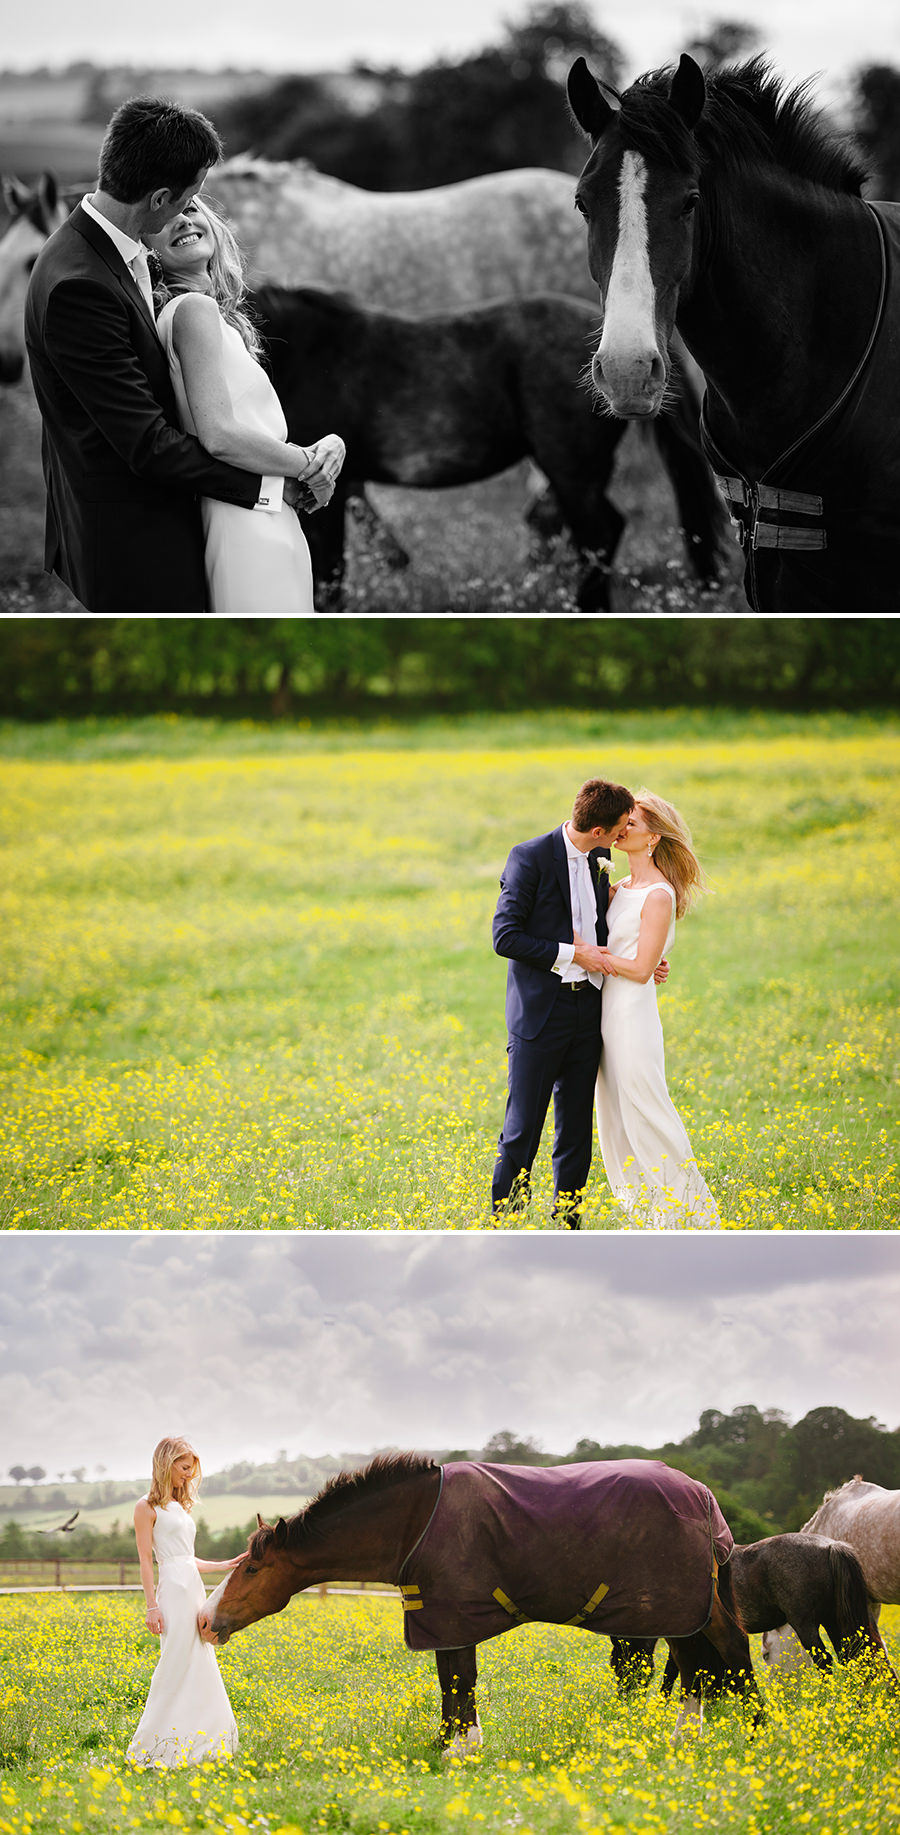 12_the best wedding photographer_creative wedding photography_bride&groom portrait